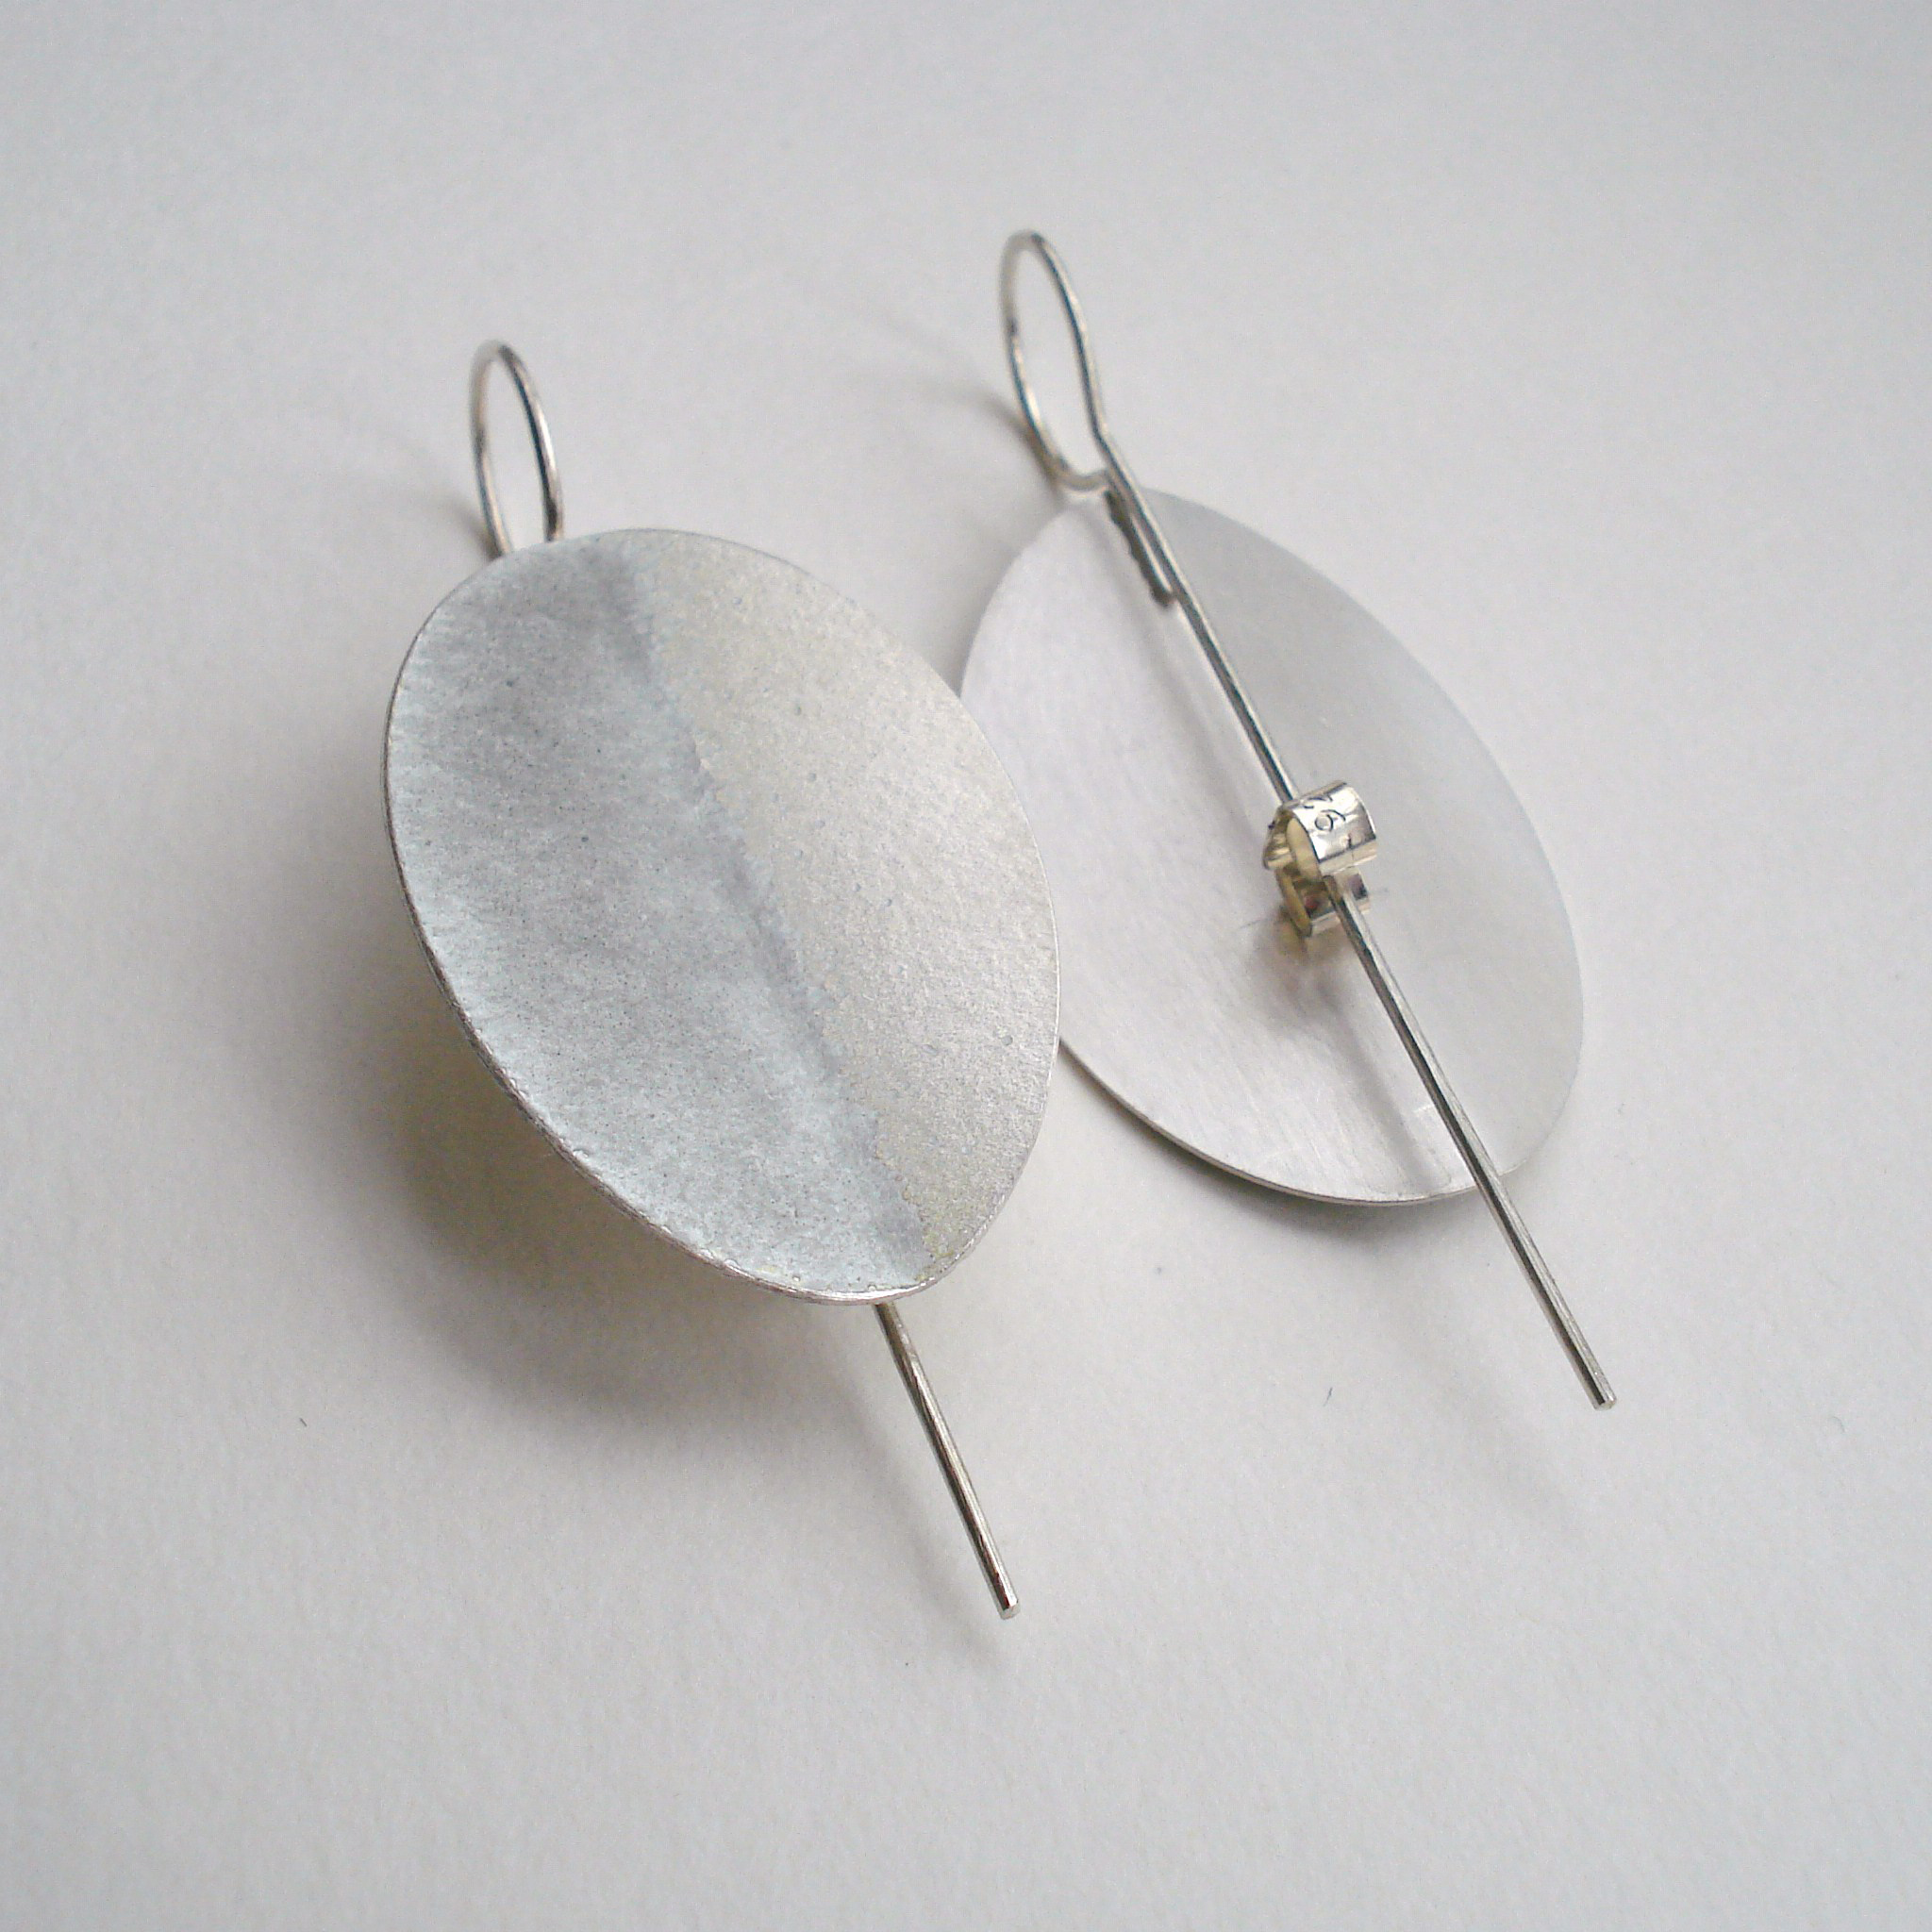 devon bud jewellery plymouth silver hoop contemporary product oxidized gallery fixed oxidised damer earrings victoria mirri sewart